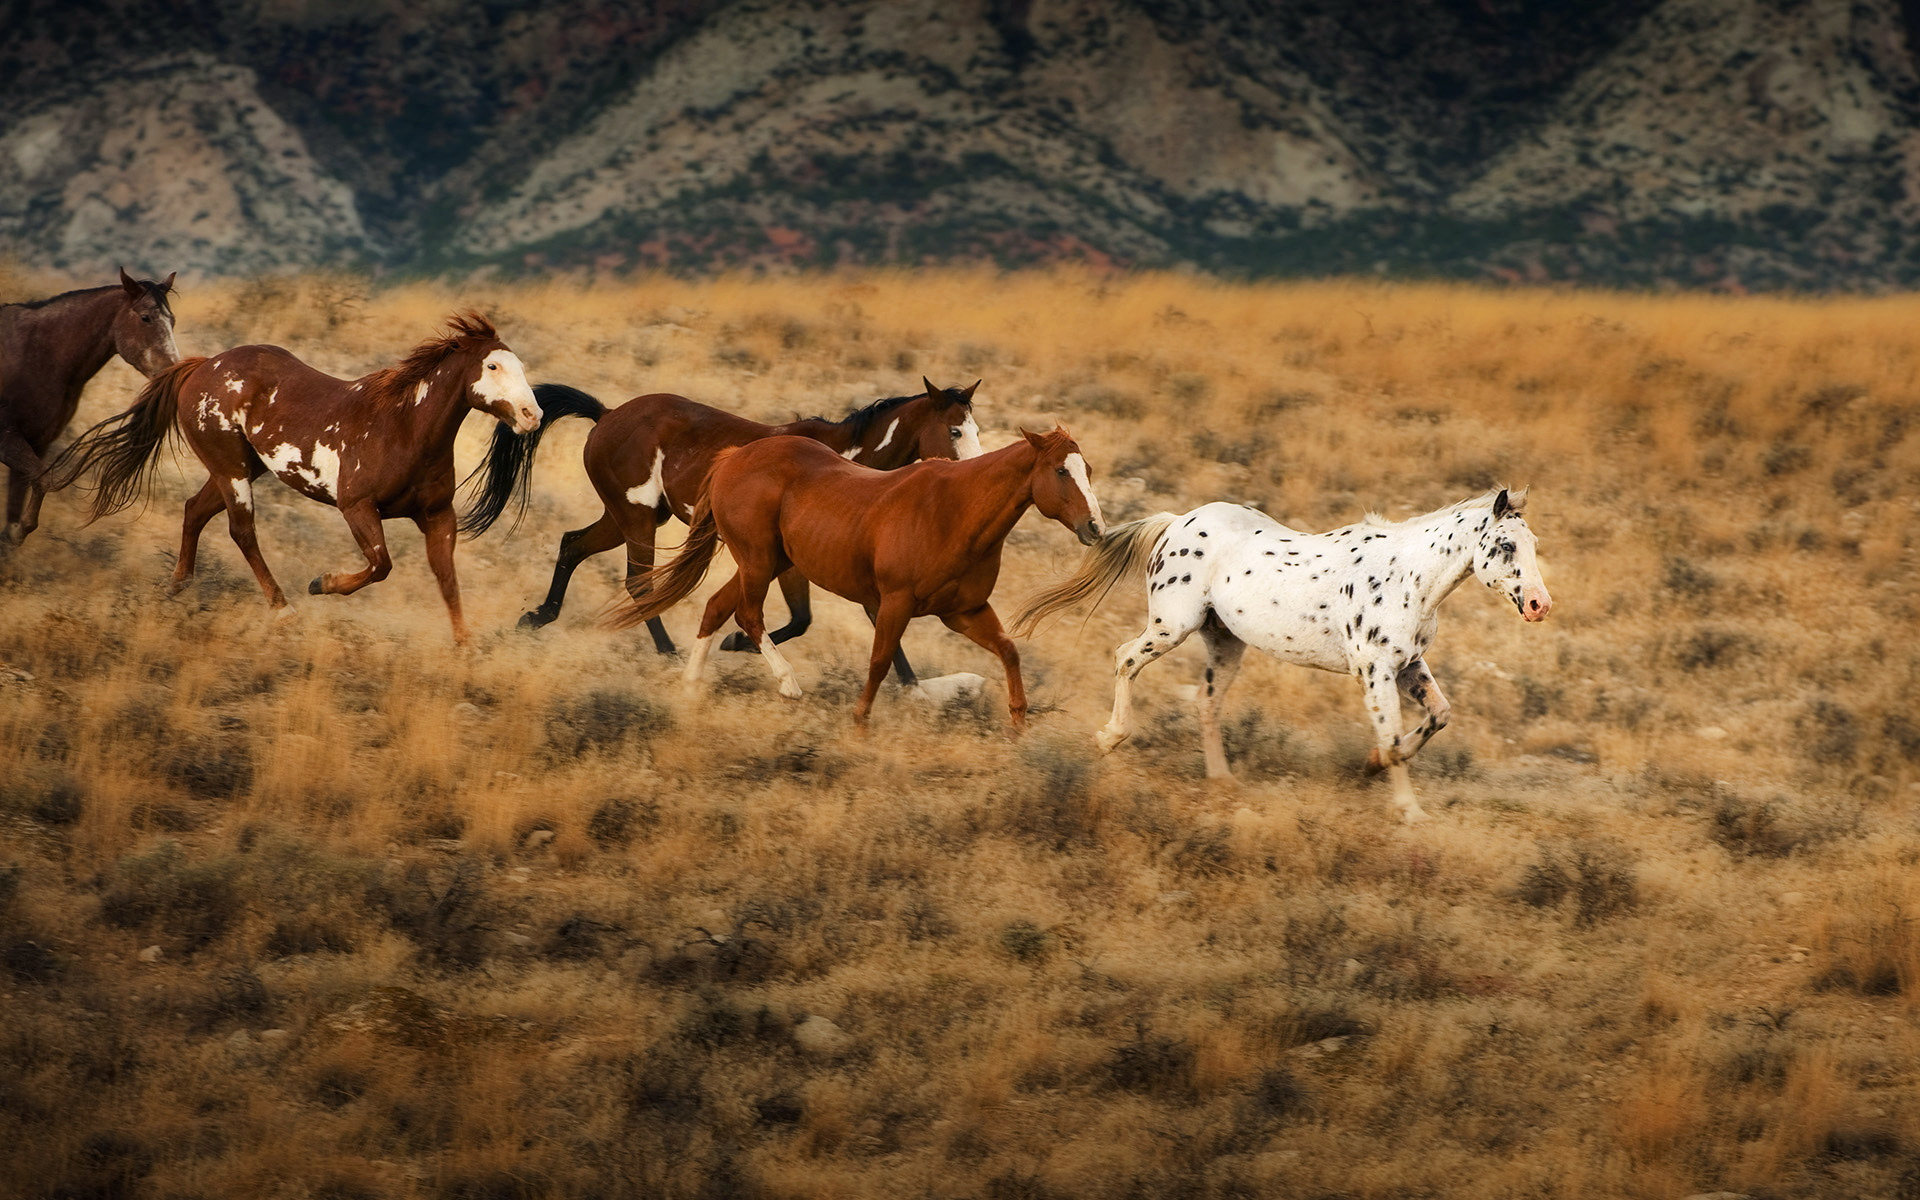 Running Horses Wallpaper Desktop More Information